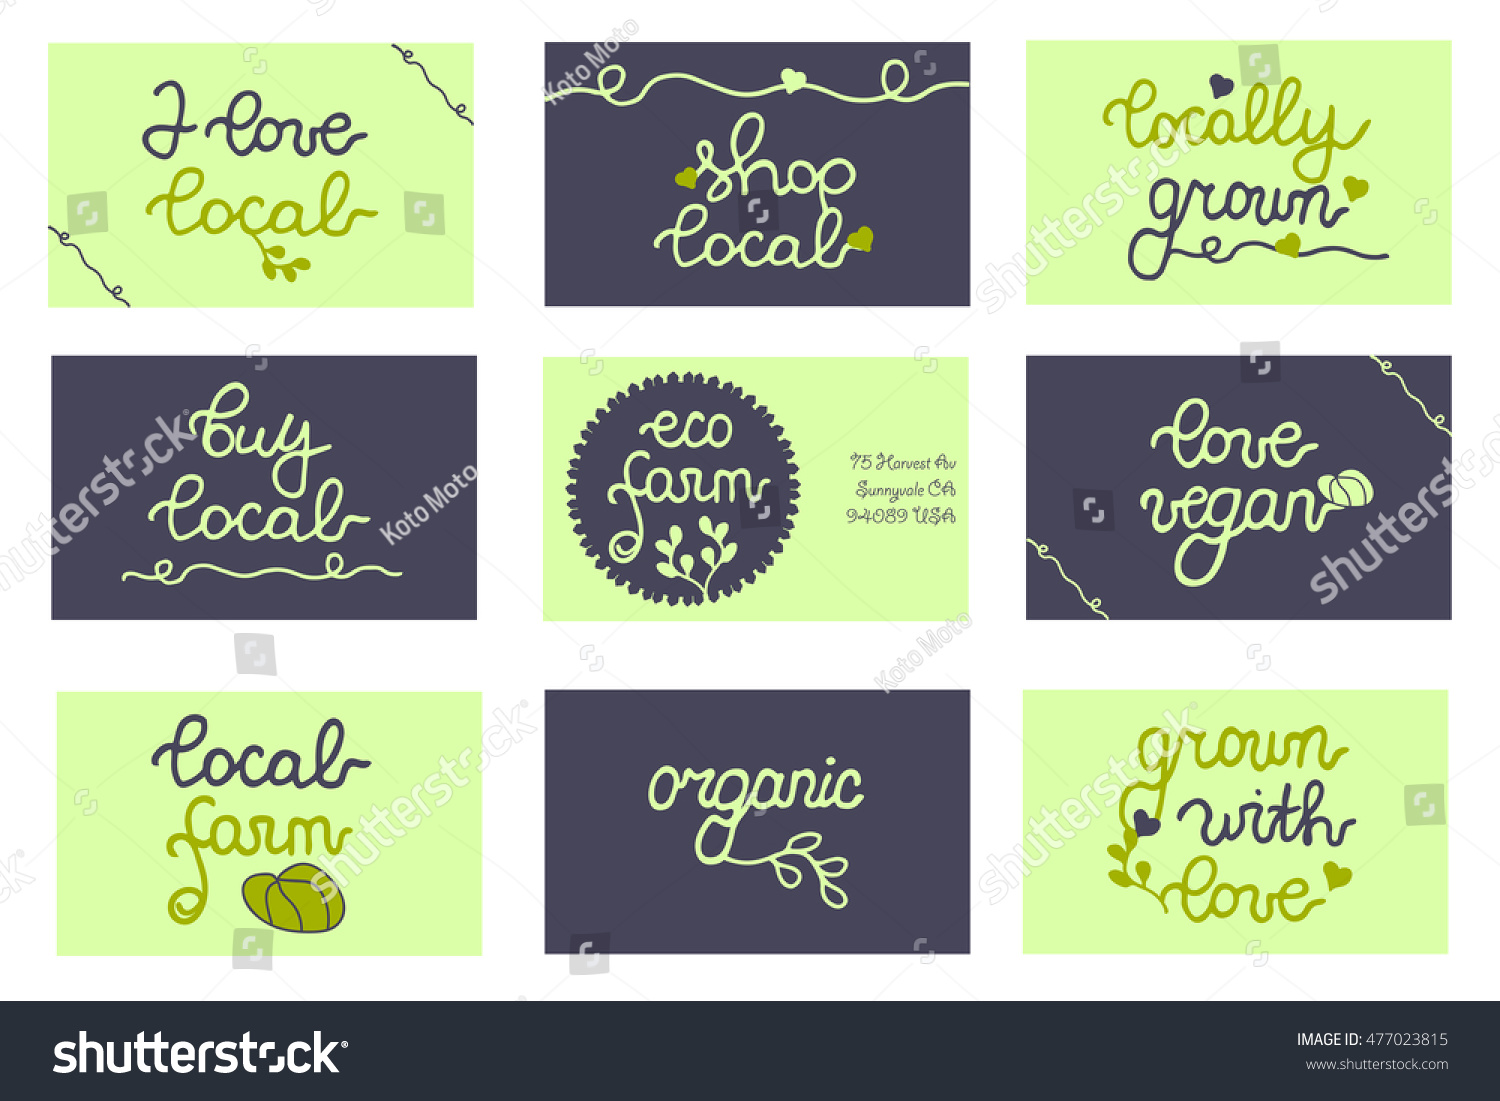 Badges business cards package bag concept stock vector 477023815 badges business cards for package bag concept local promo farmers market magicingreecefo Choice Image